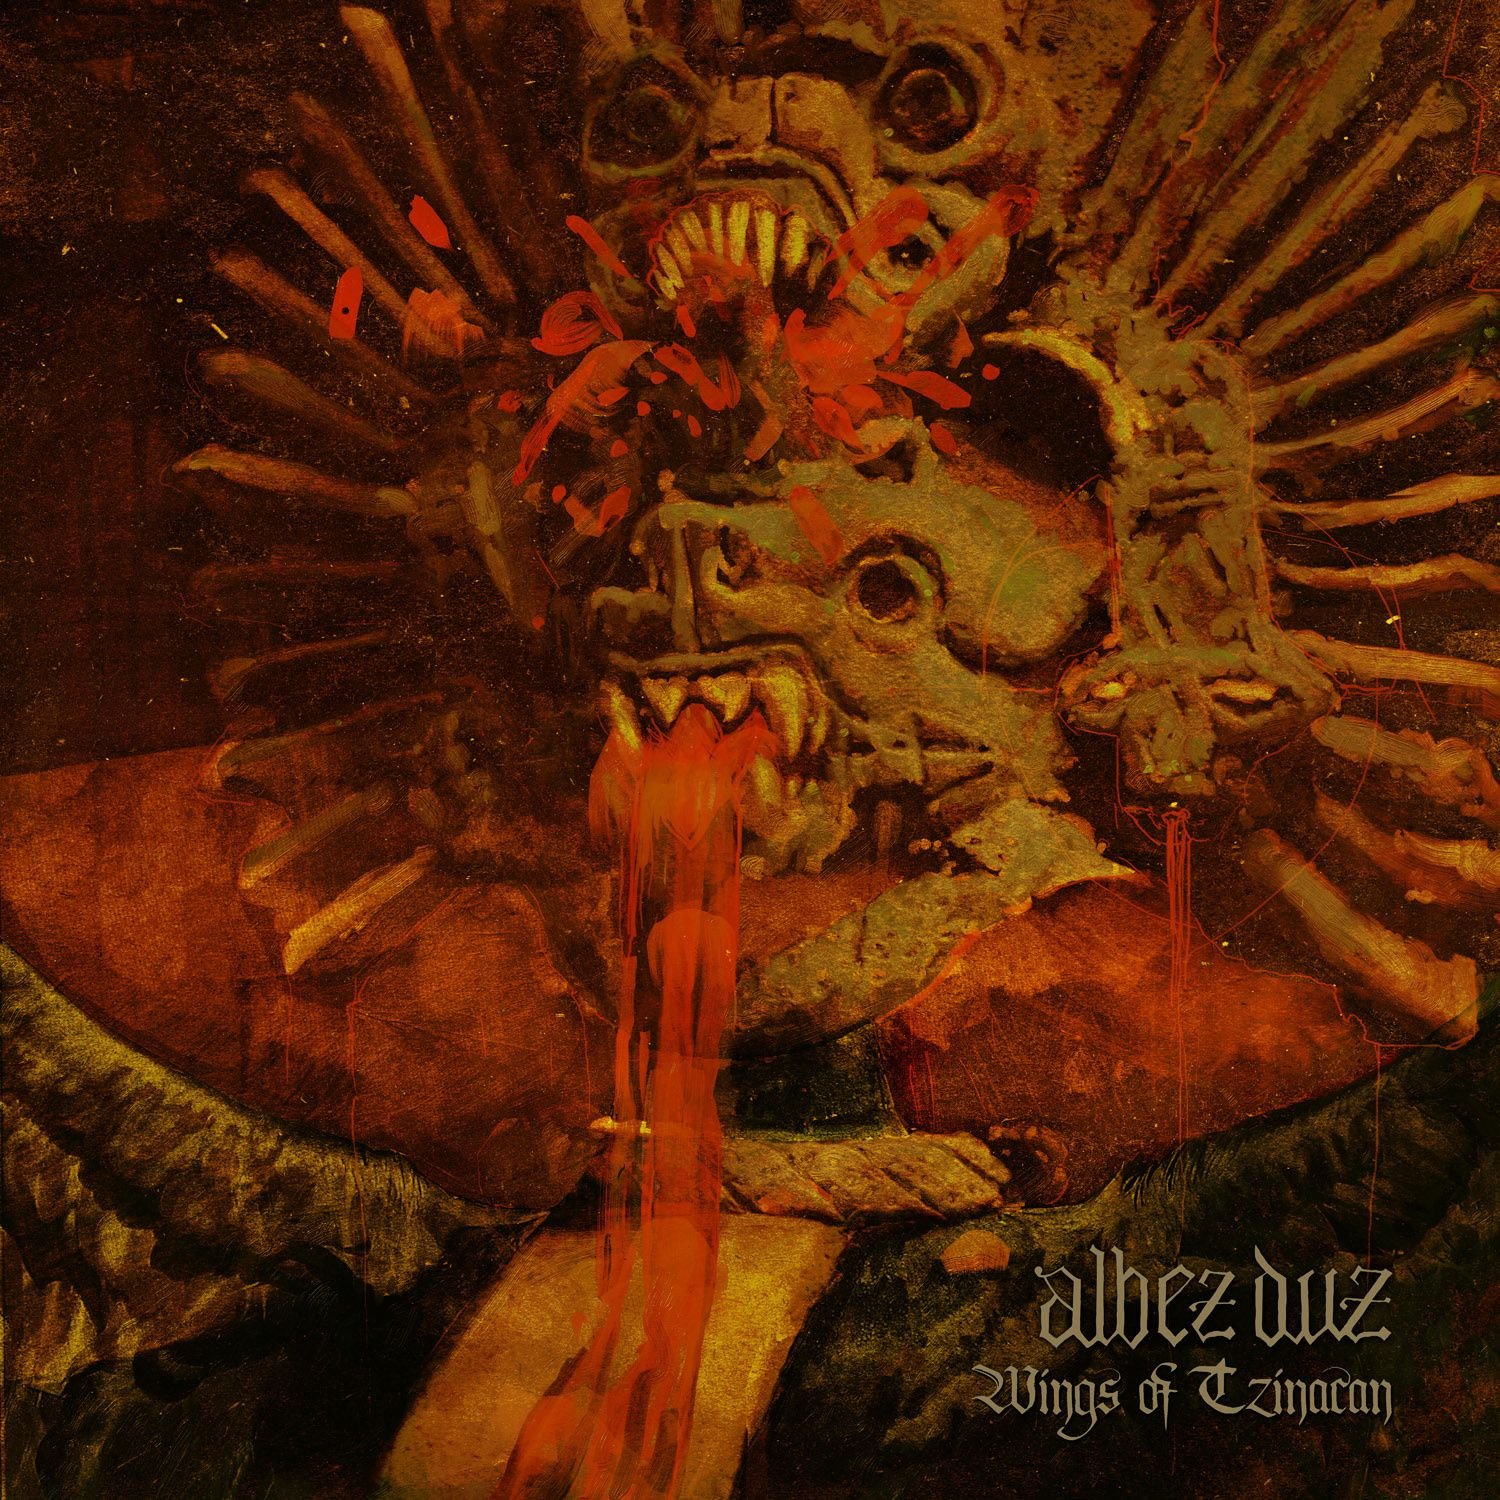 CD review ALBEZ DUZ &quot&#x3B;Wings of Tzinacan&quot&#x3B;